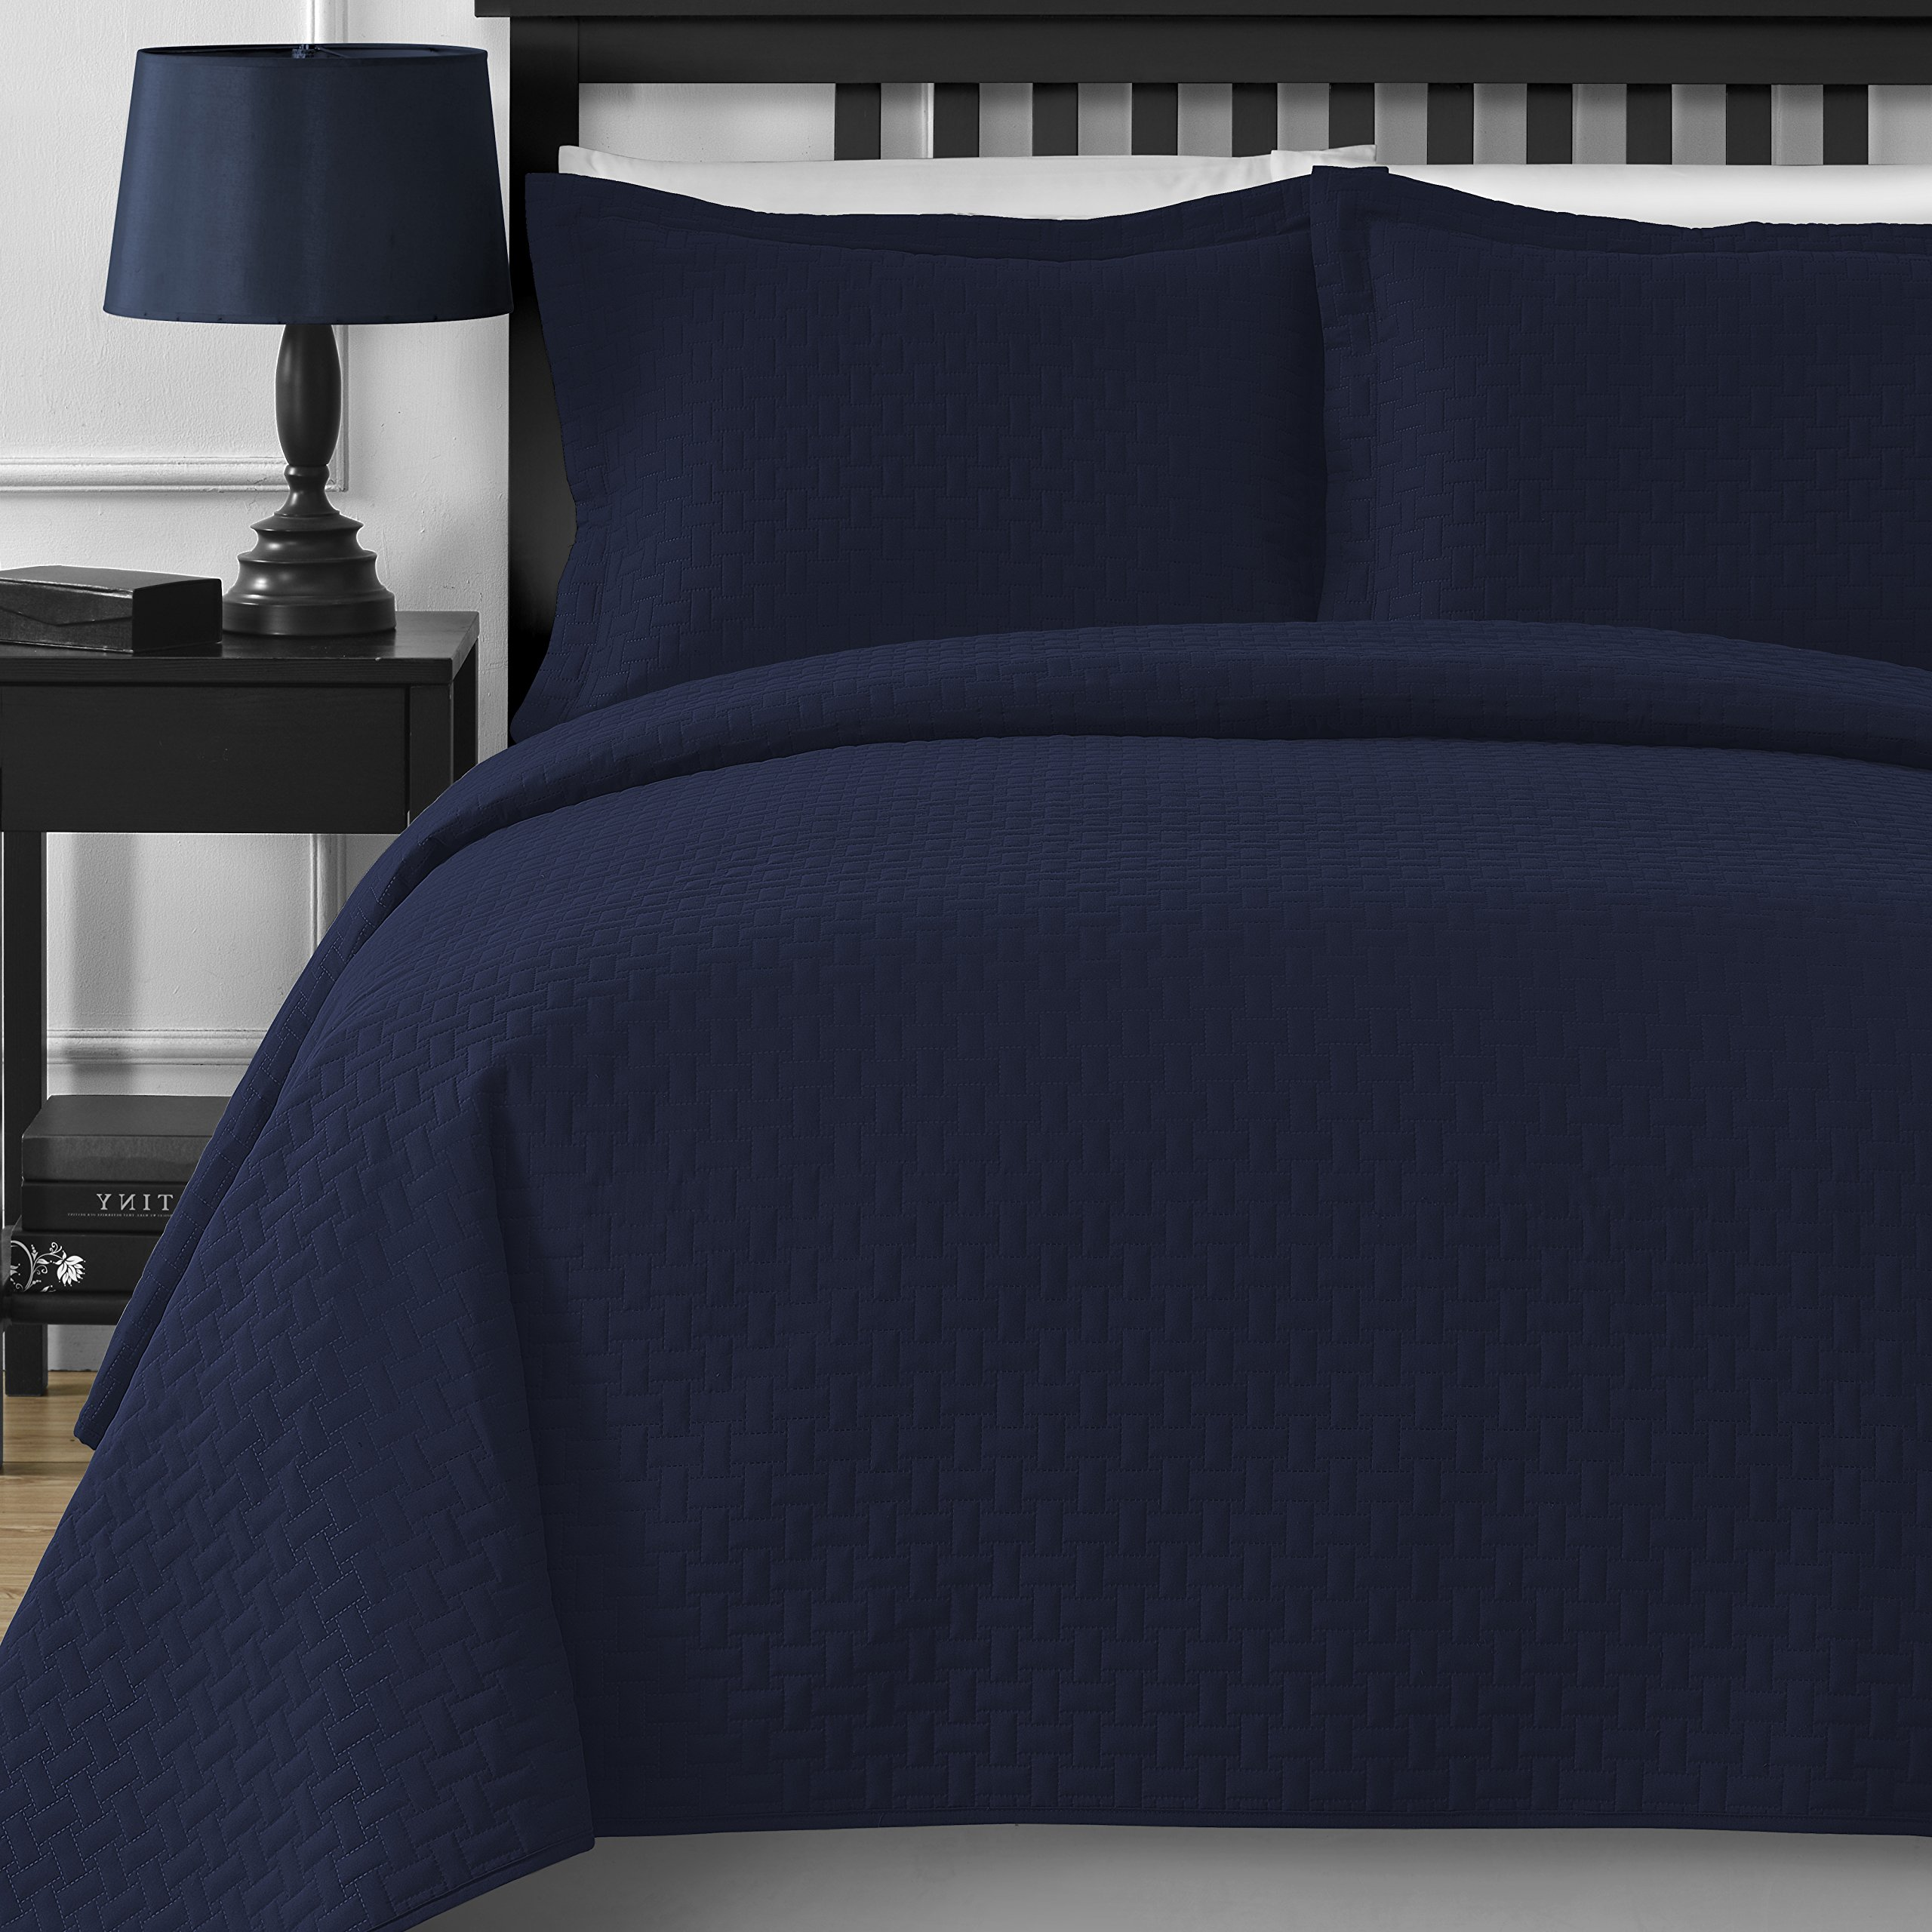 Extra Lightweight and Oversized Comfy Bedding Frame Embossing 3-piece Bedspread Coverlet Set (King/California King, Navy Blue) by Comfy Bedding